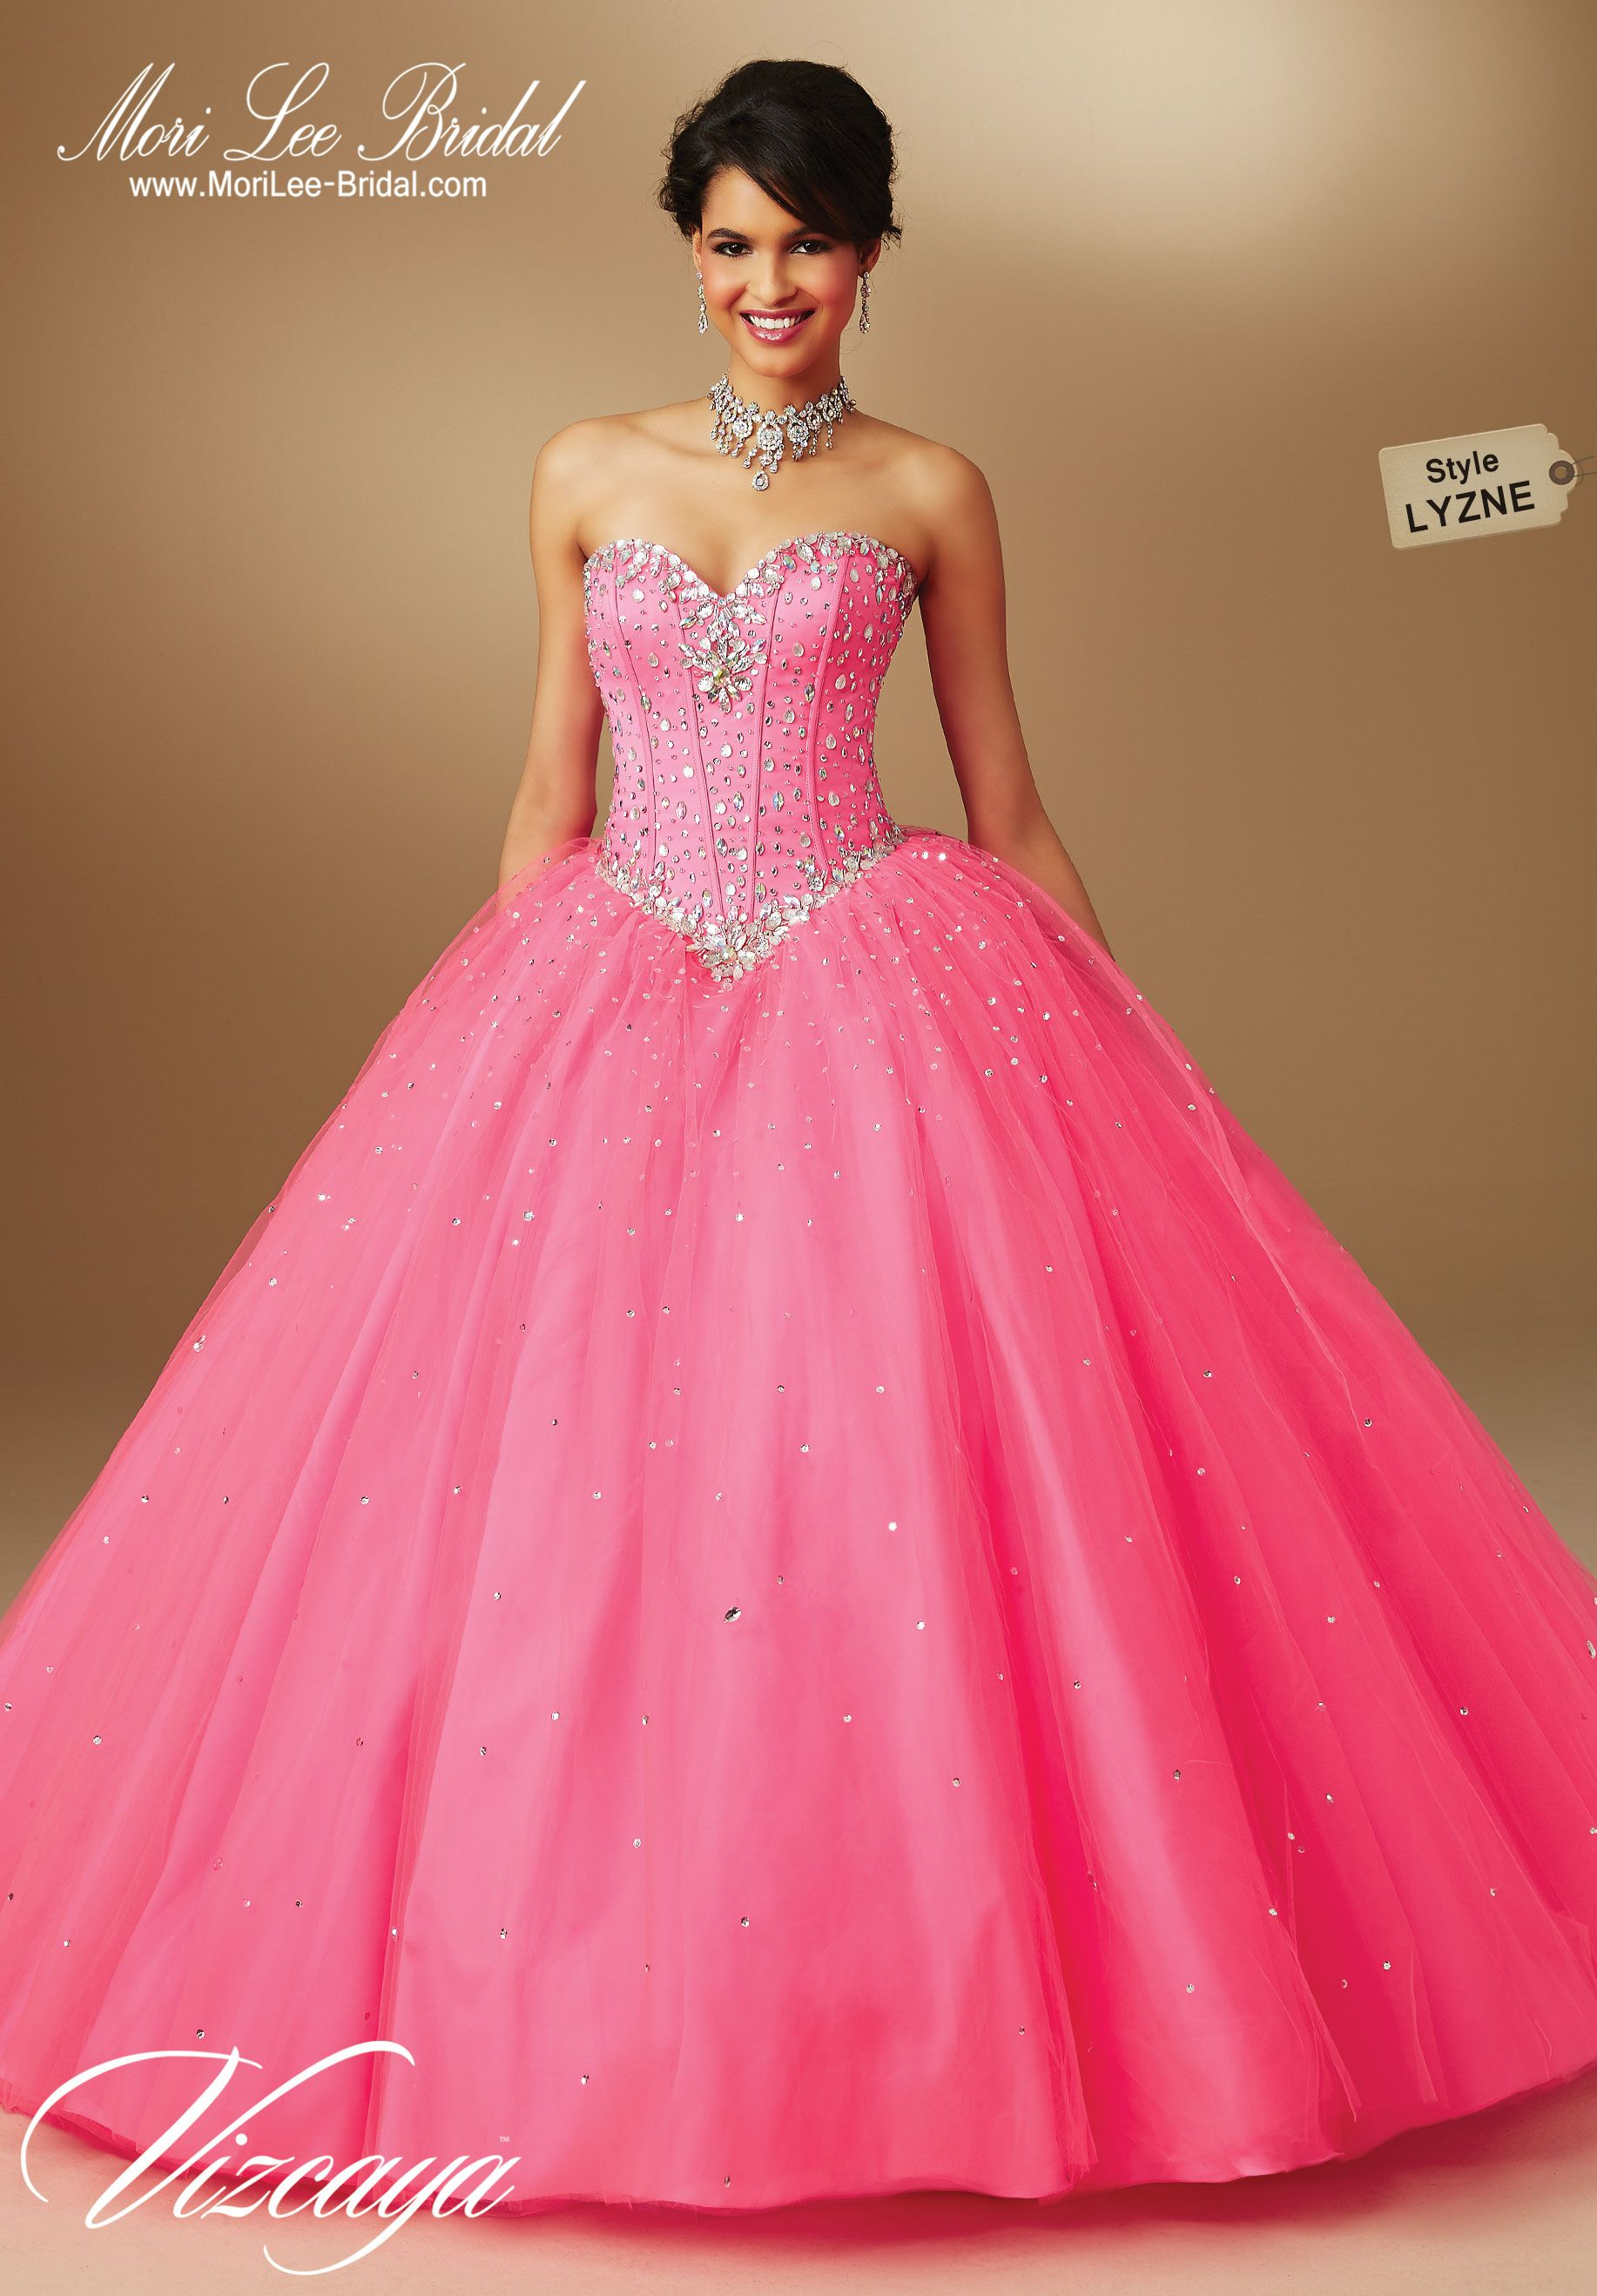 Style LYZNE TULLE QUINCEANERA GOWN WITH BEADING.Bolero Jacket ...